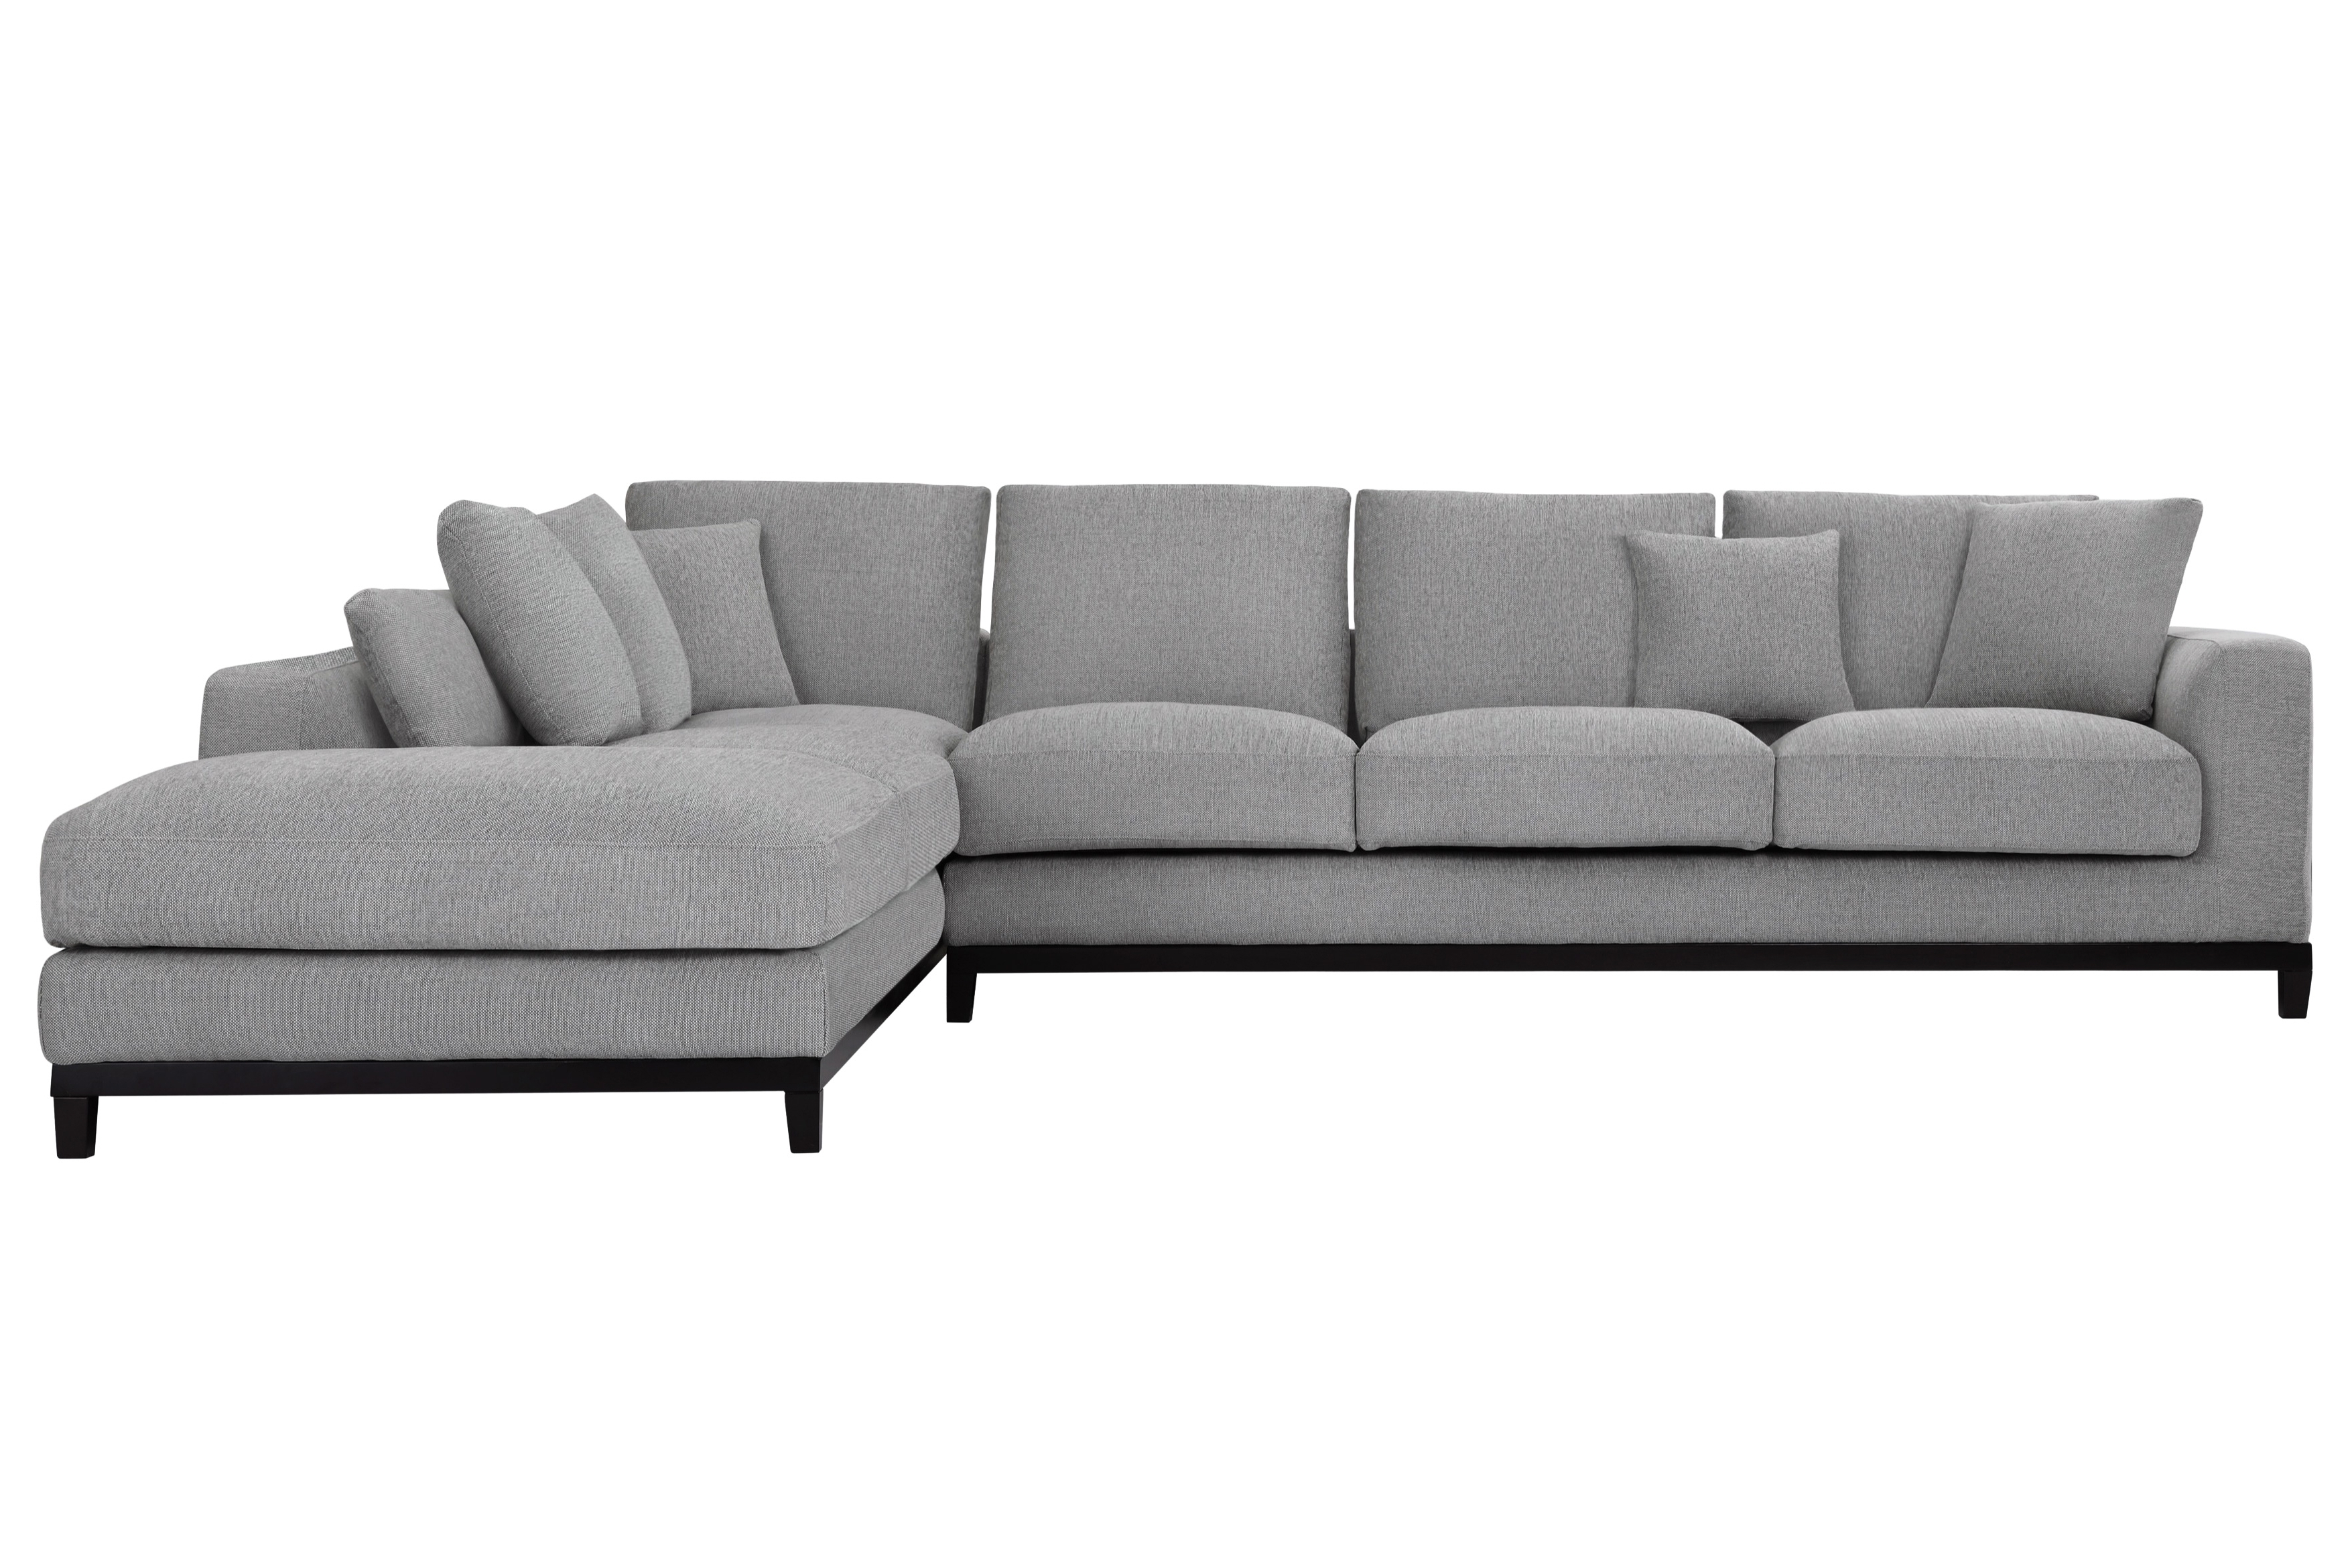 Light Gray Left Sectional Sofa Upholstered Article Burrard Divani With Regard To Most Up To Date Quebec Sectional Sofas (View 16 of 20)